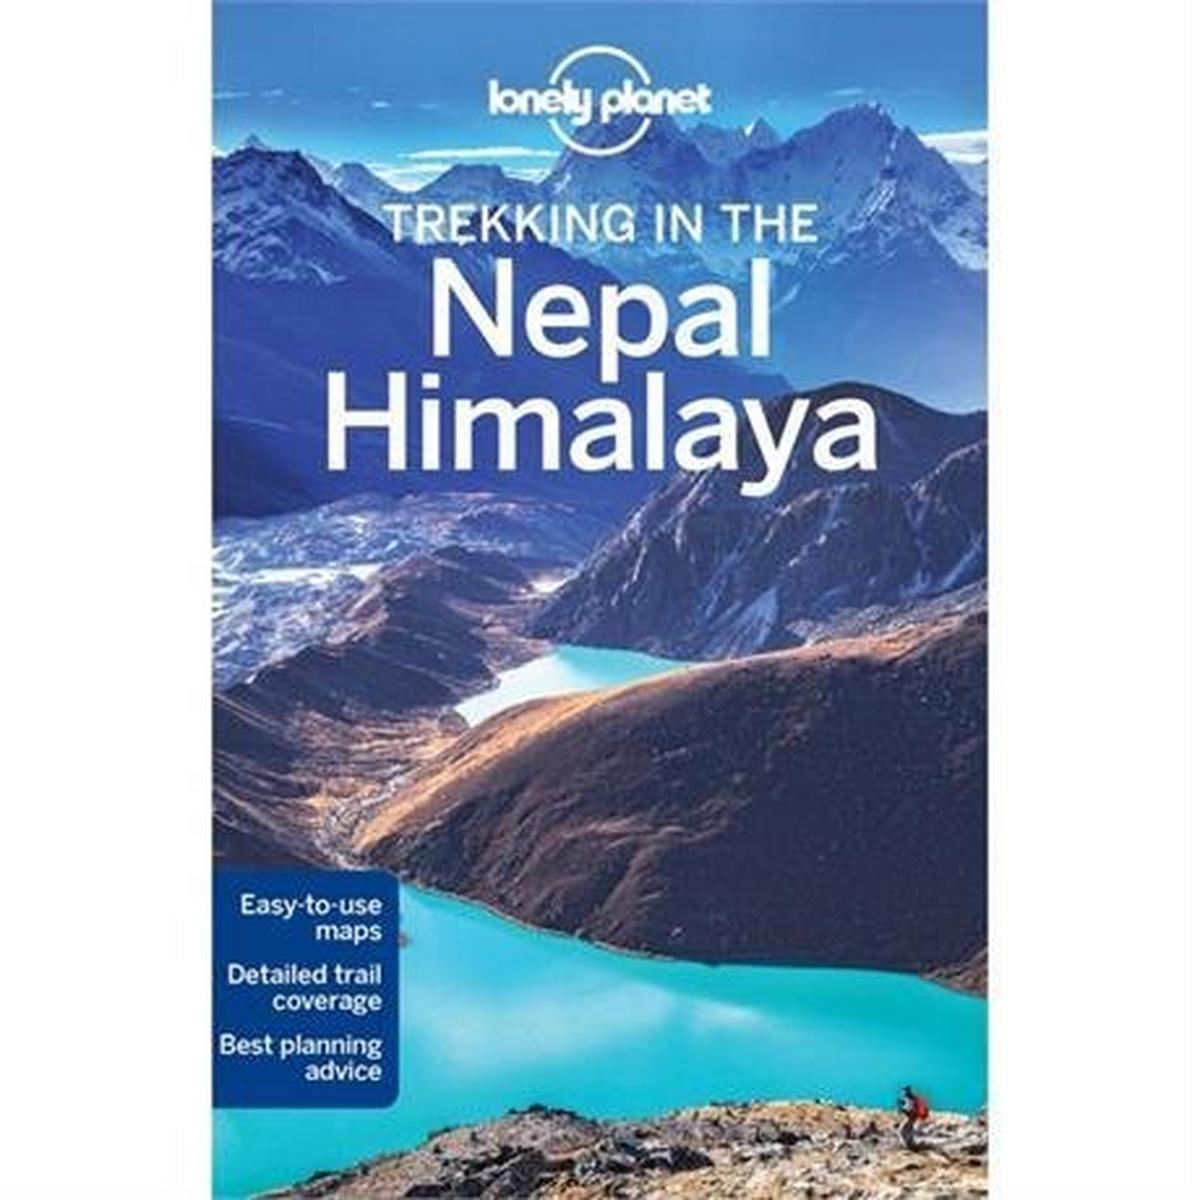 Lonely Planet Travel Guide Book: Trekking in the Nepal Himalaya (10th Edition)